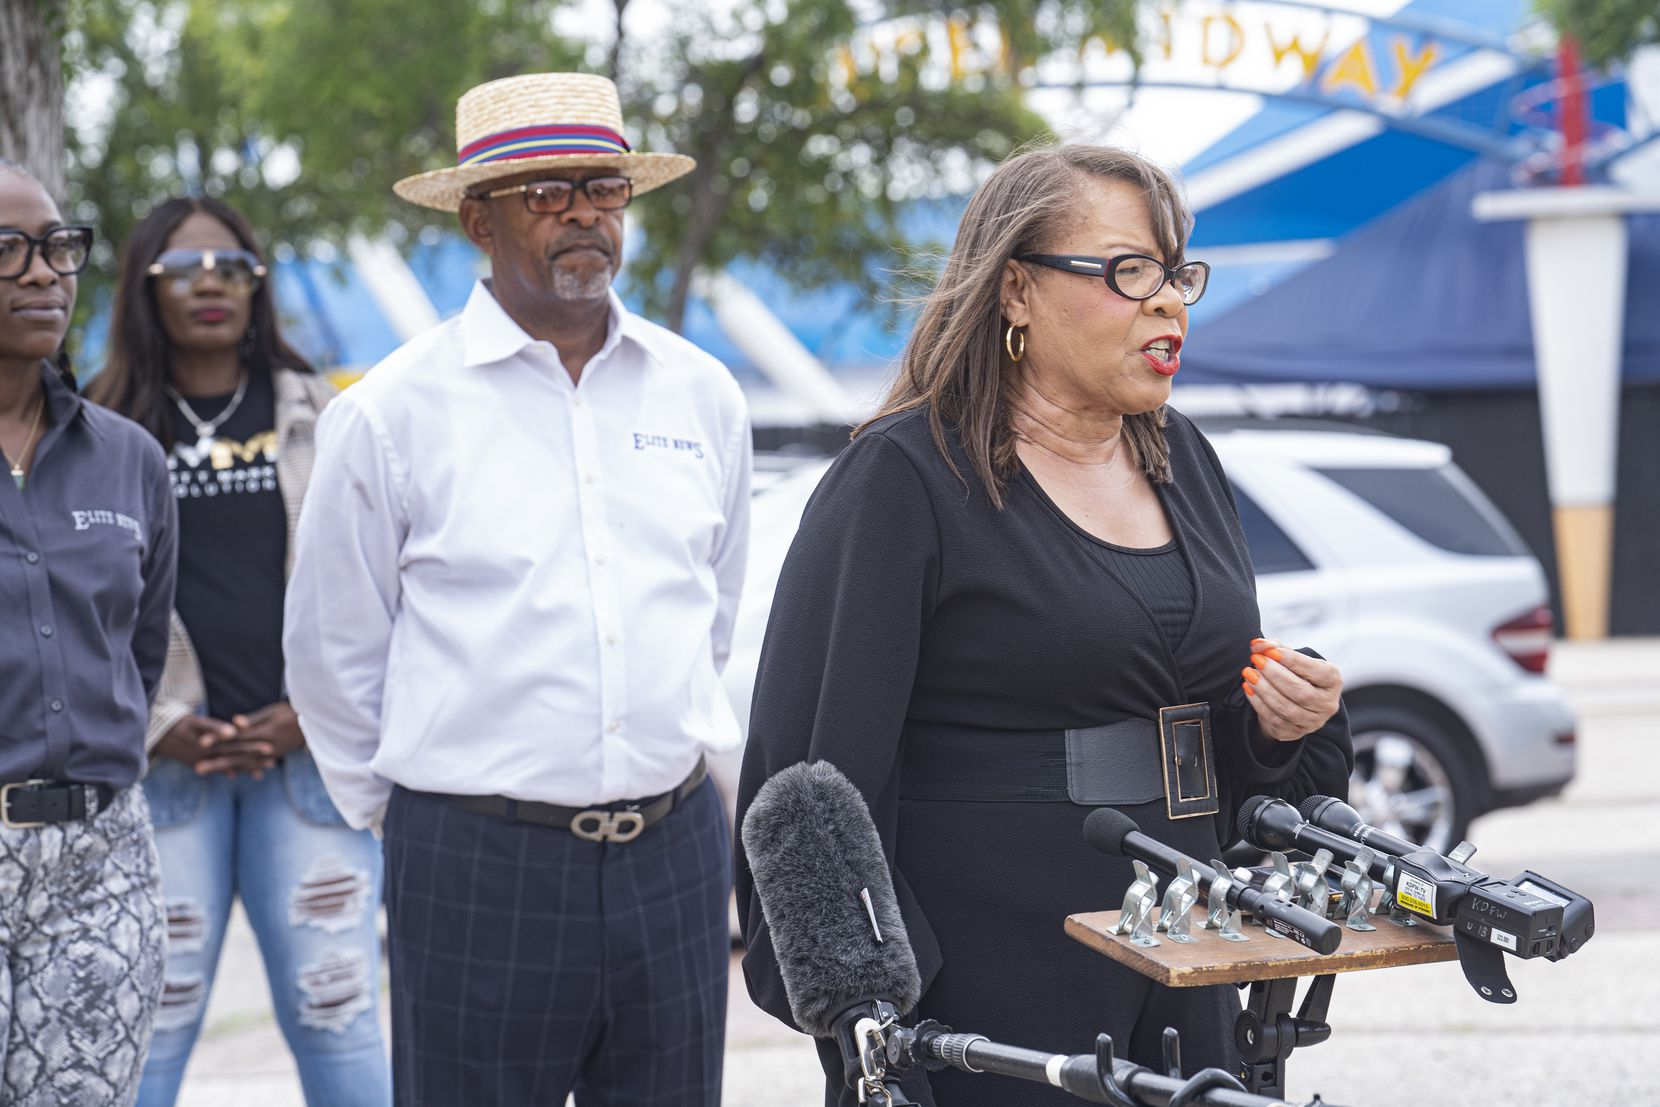 Elite News and the Blair Foundation host the Juneteenth March and Festival at Fair Park on June 19. Seen here is Pat Bailey of the Black Alzheimer's Study at UNT health science center in Fort Worth speaking at a press conference announcing the event.